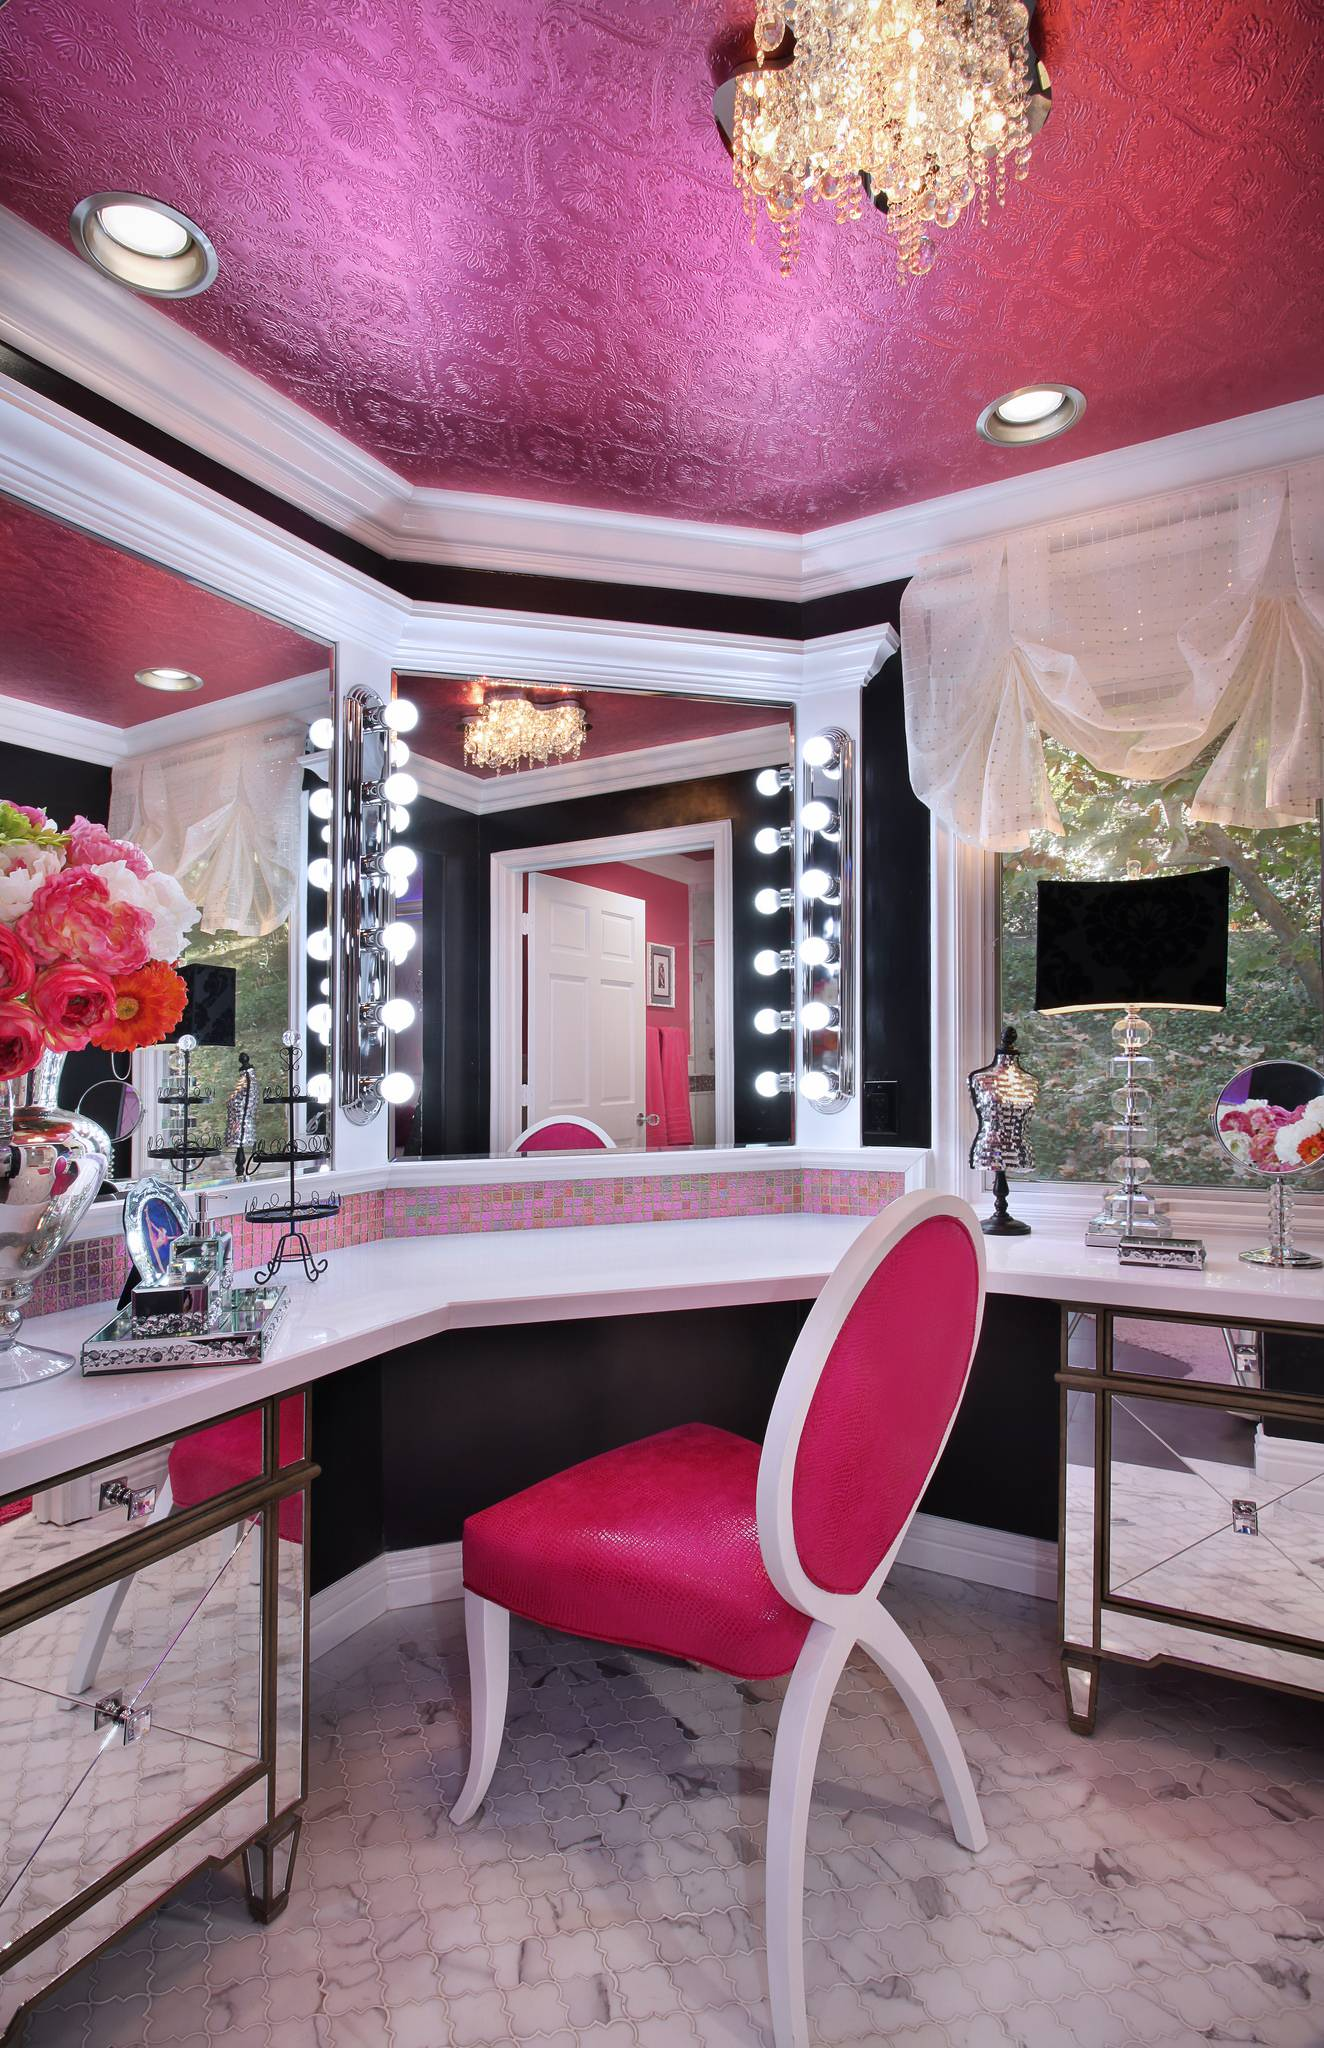 7 Steps to Your Own Kylie Jenner Inspired Glam Room ... on Makeup Room Design  id=37605